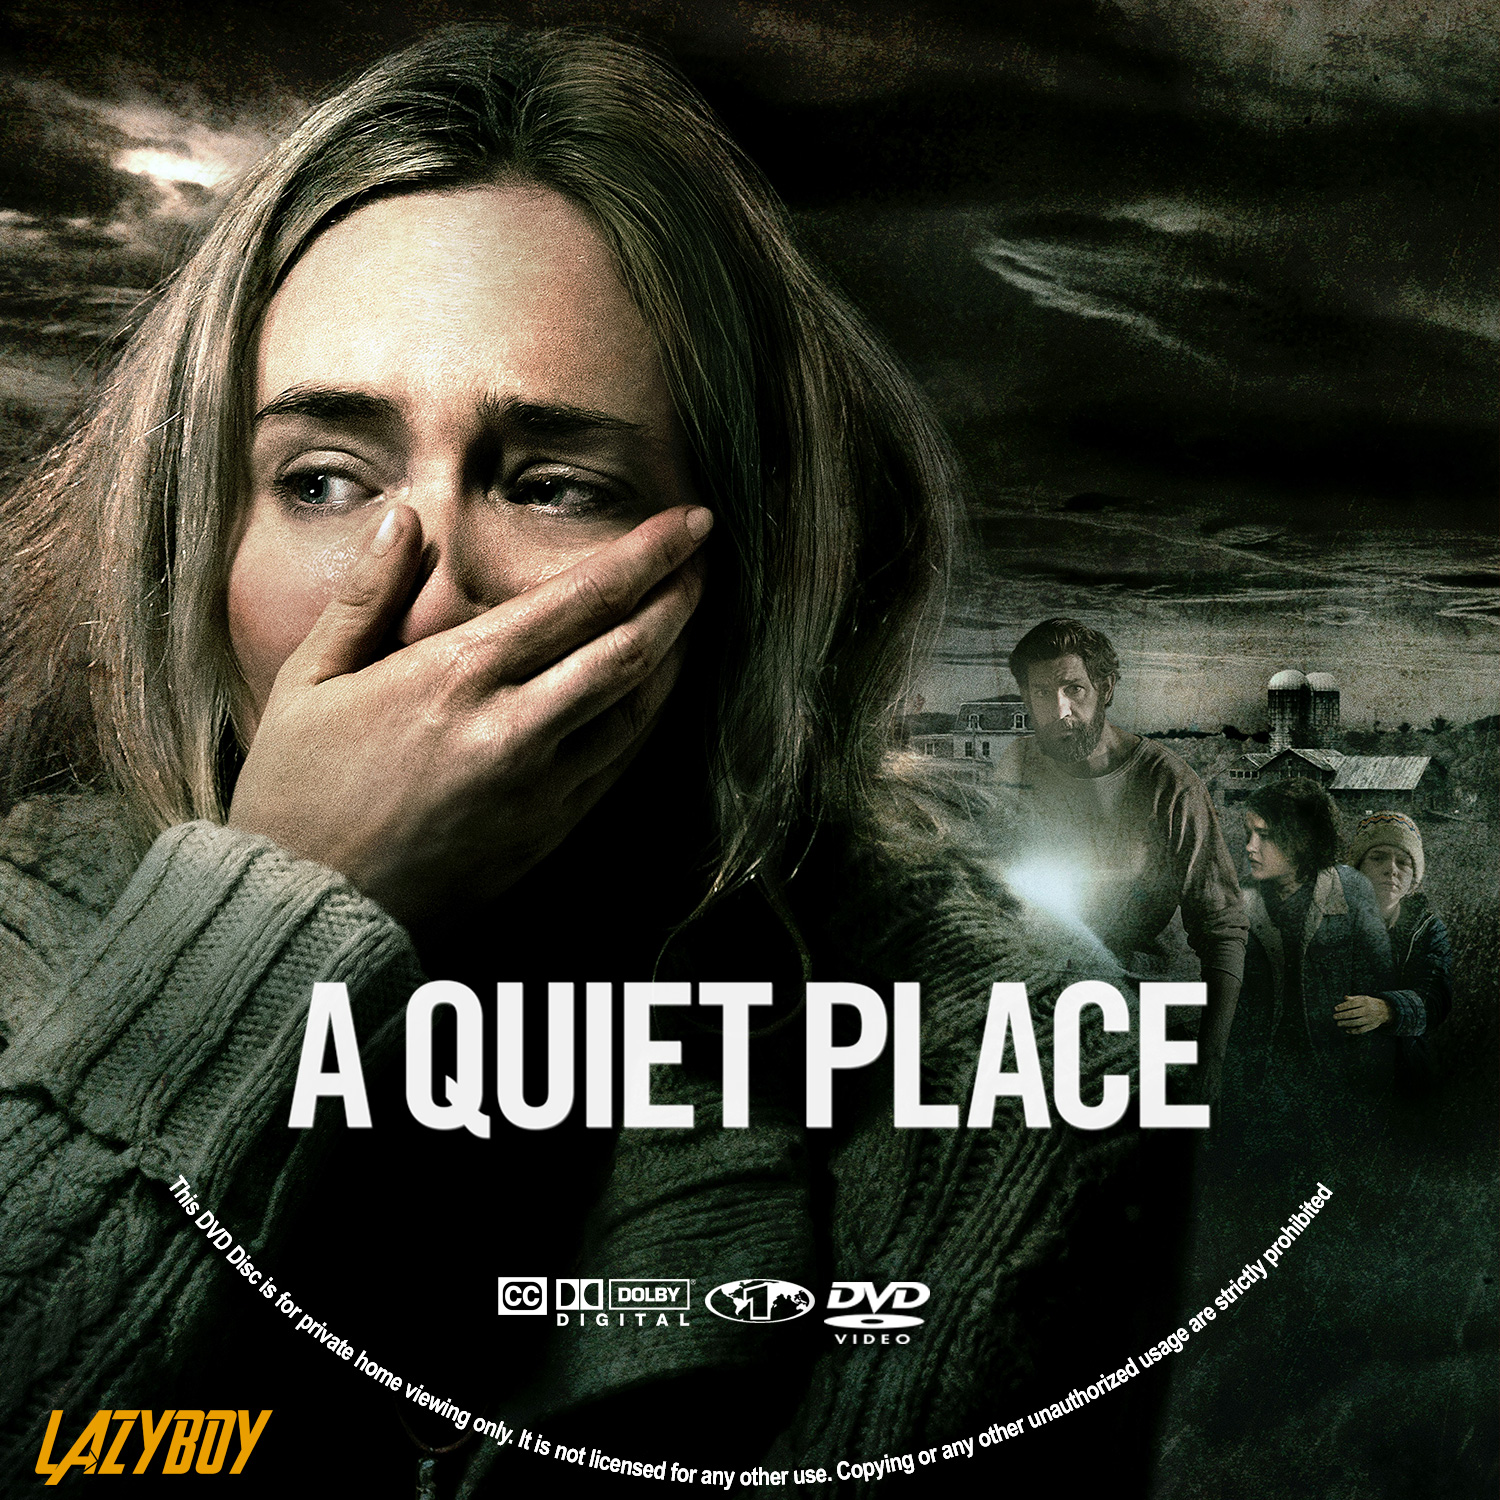 A-Quiet-Place-DVD-Label